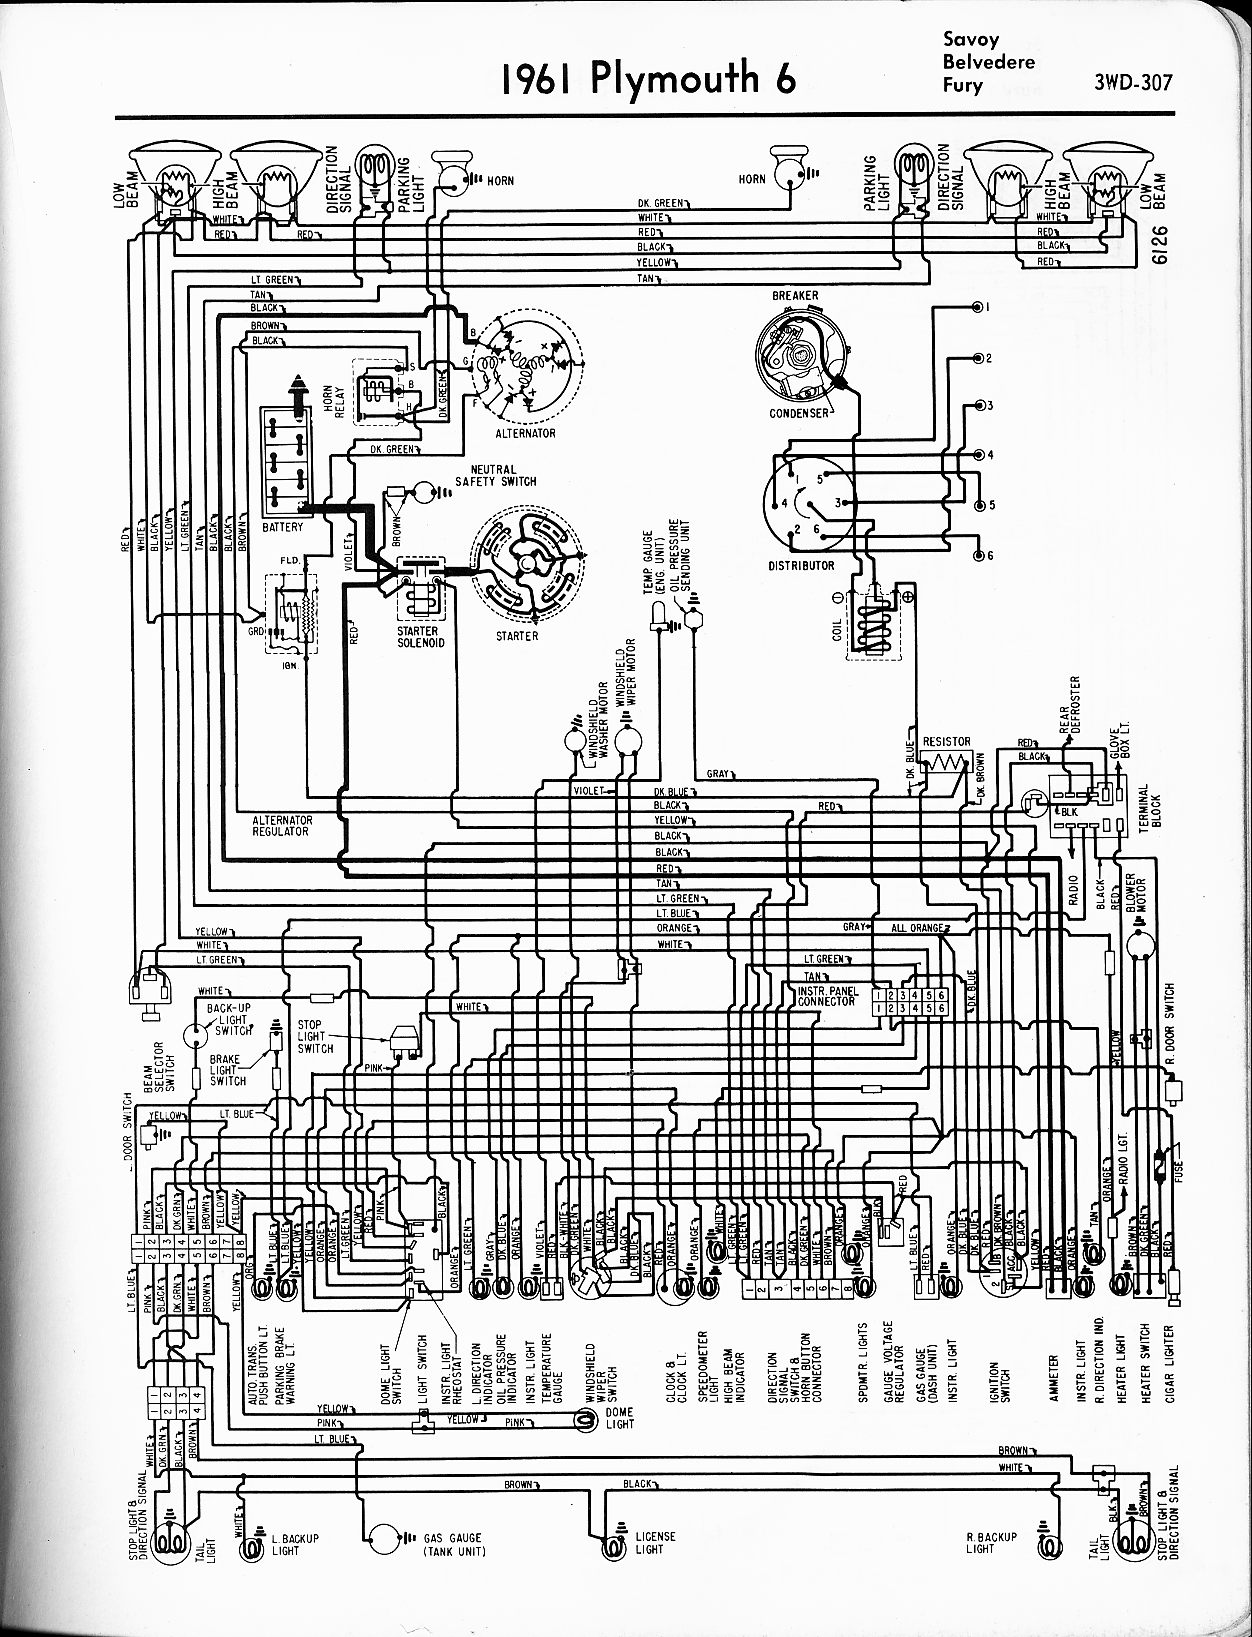 [DIAGRAM] 1965 Plymouth Belvedere Wiring Diagram FULL